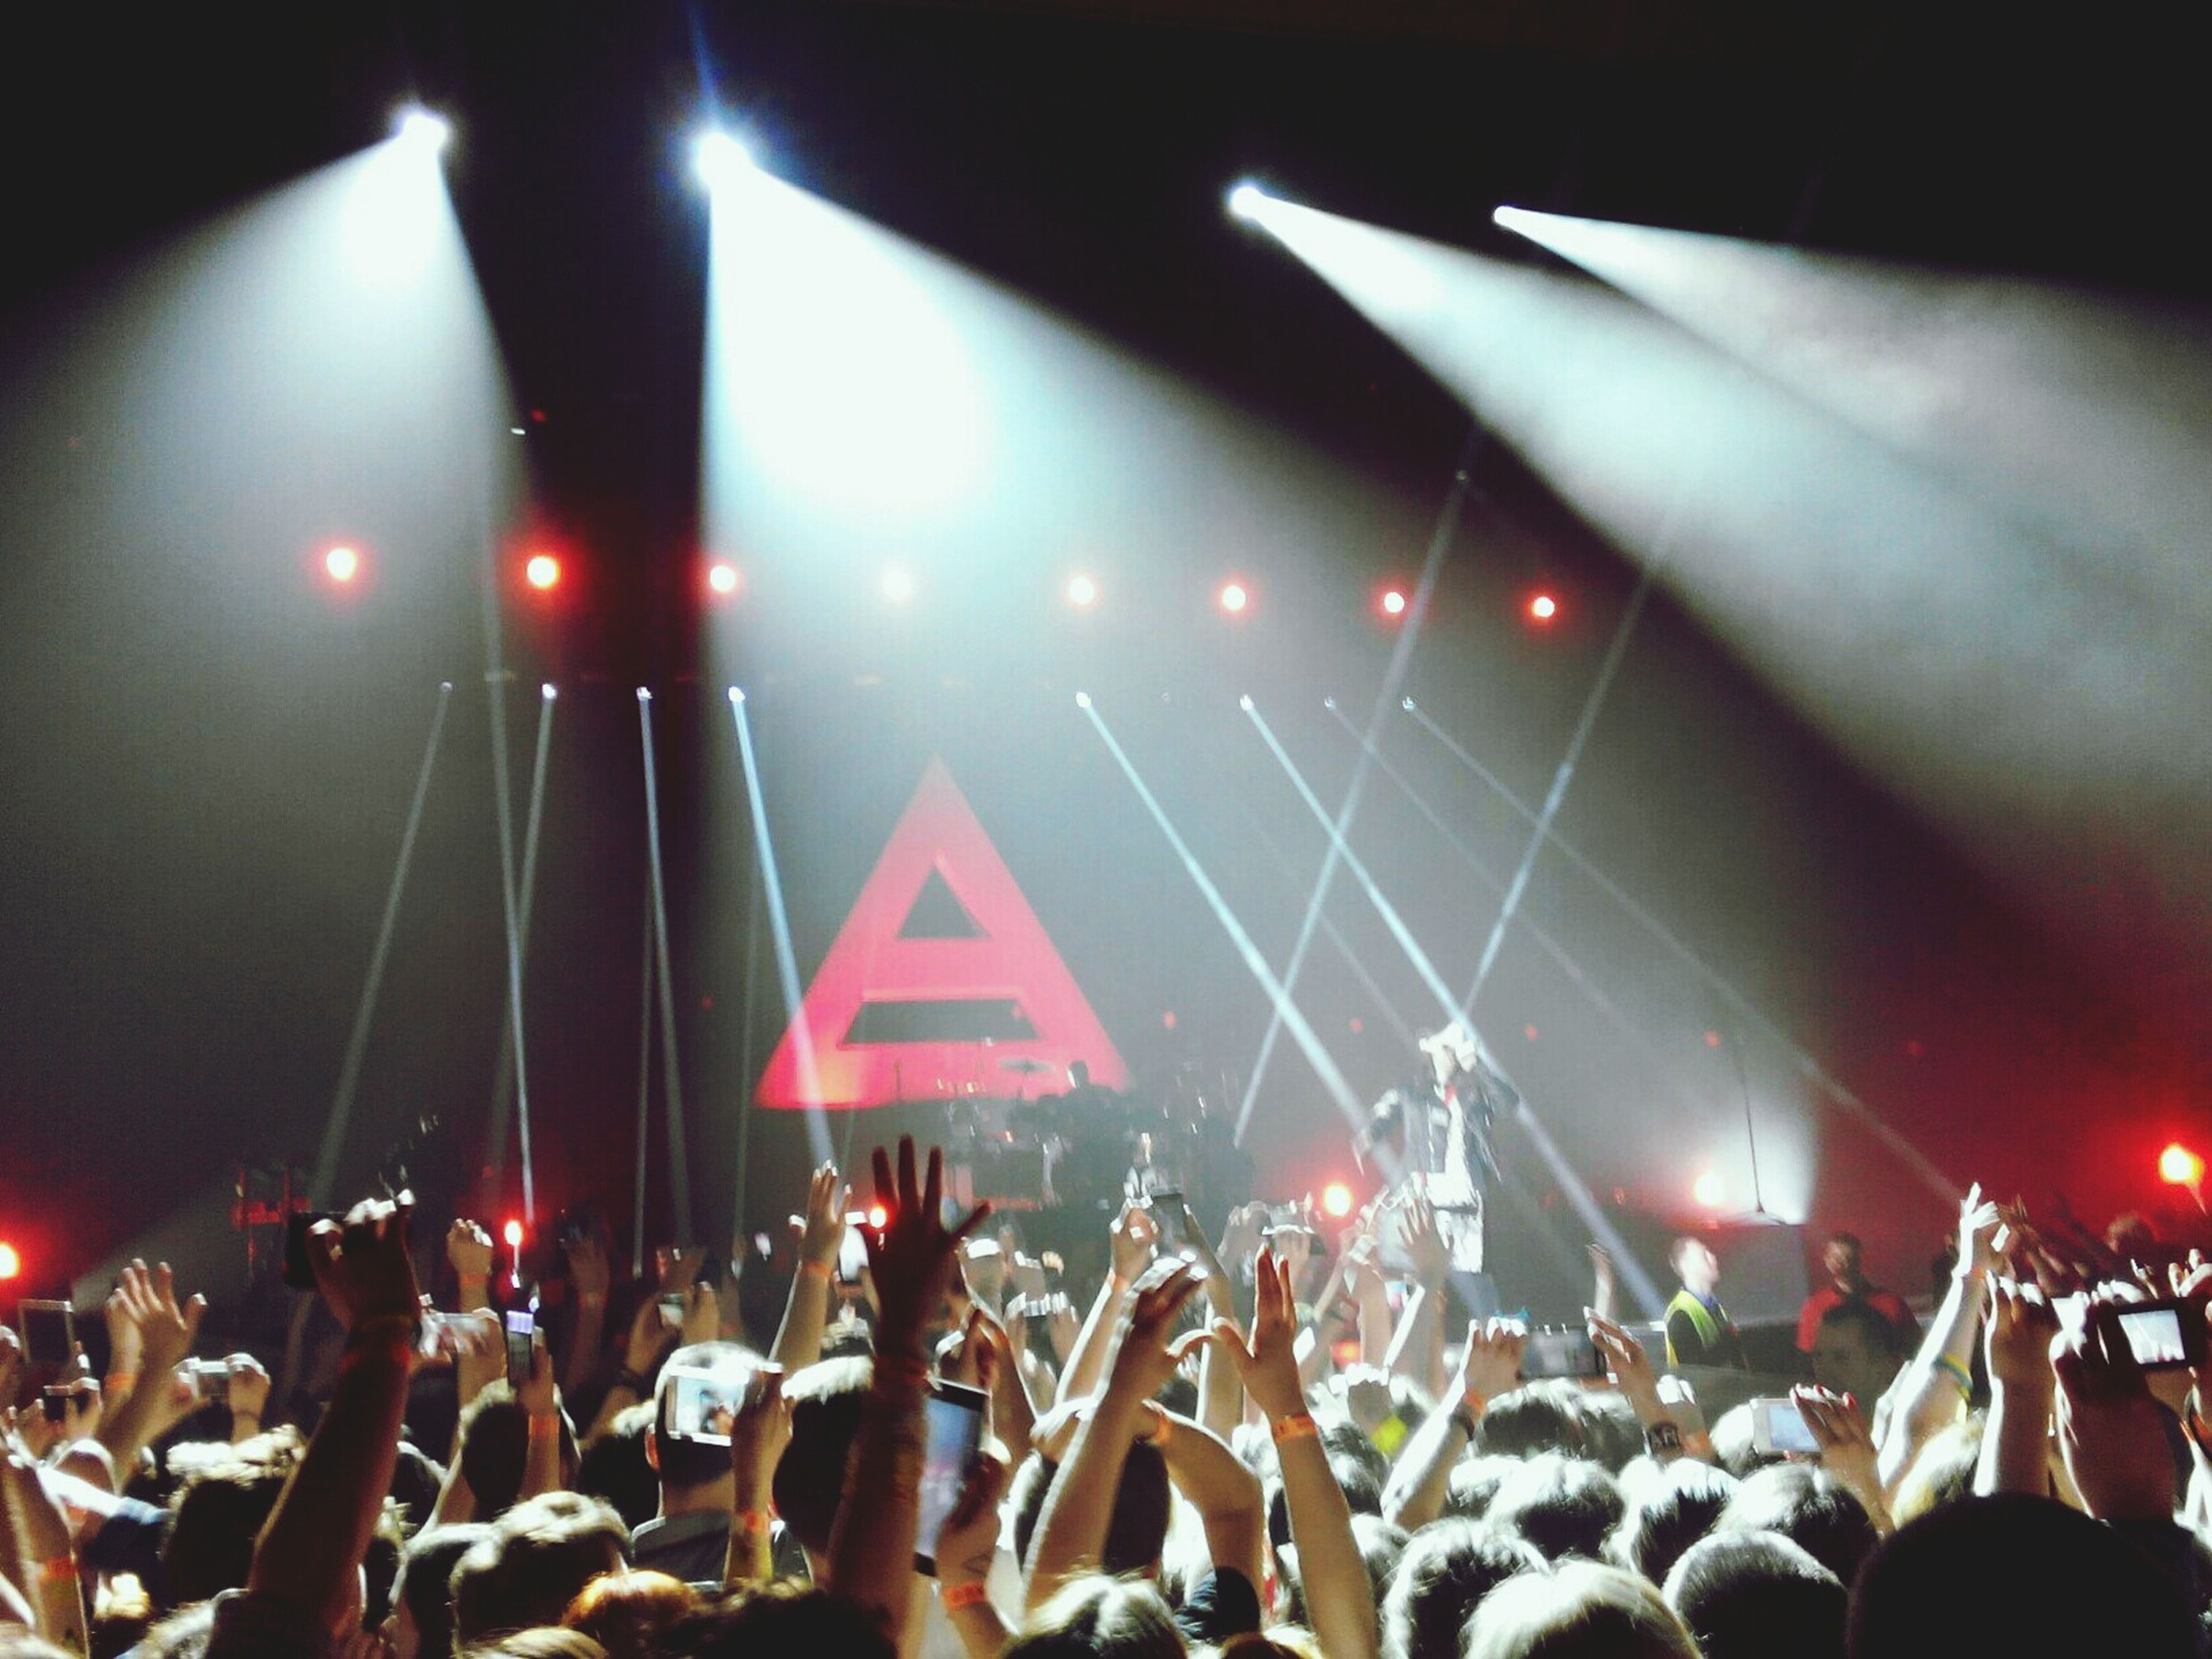 illuminated, large group of people, crowd, night, lifestyles, men, leisure activity, person, nightlife, indoors, lighting equipment, performance, celebration, arts culture and entertainment, music, event, youth culture, light - natural phenomenon